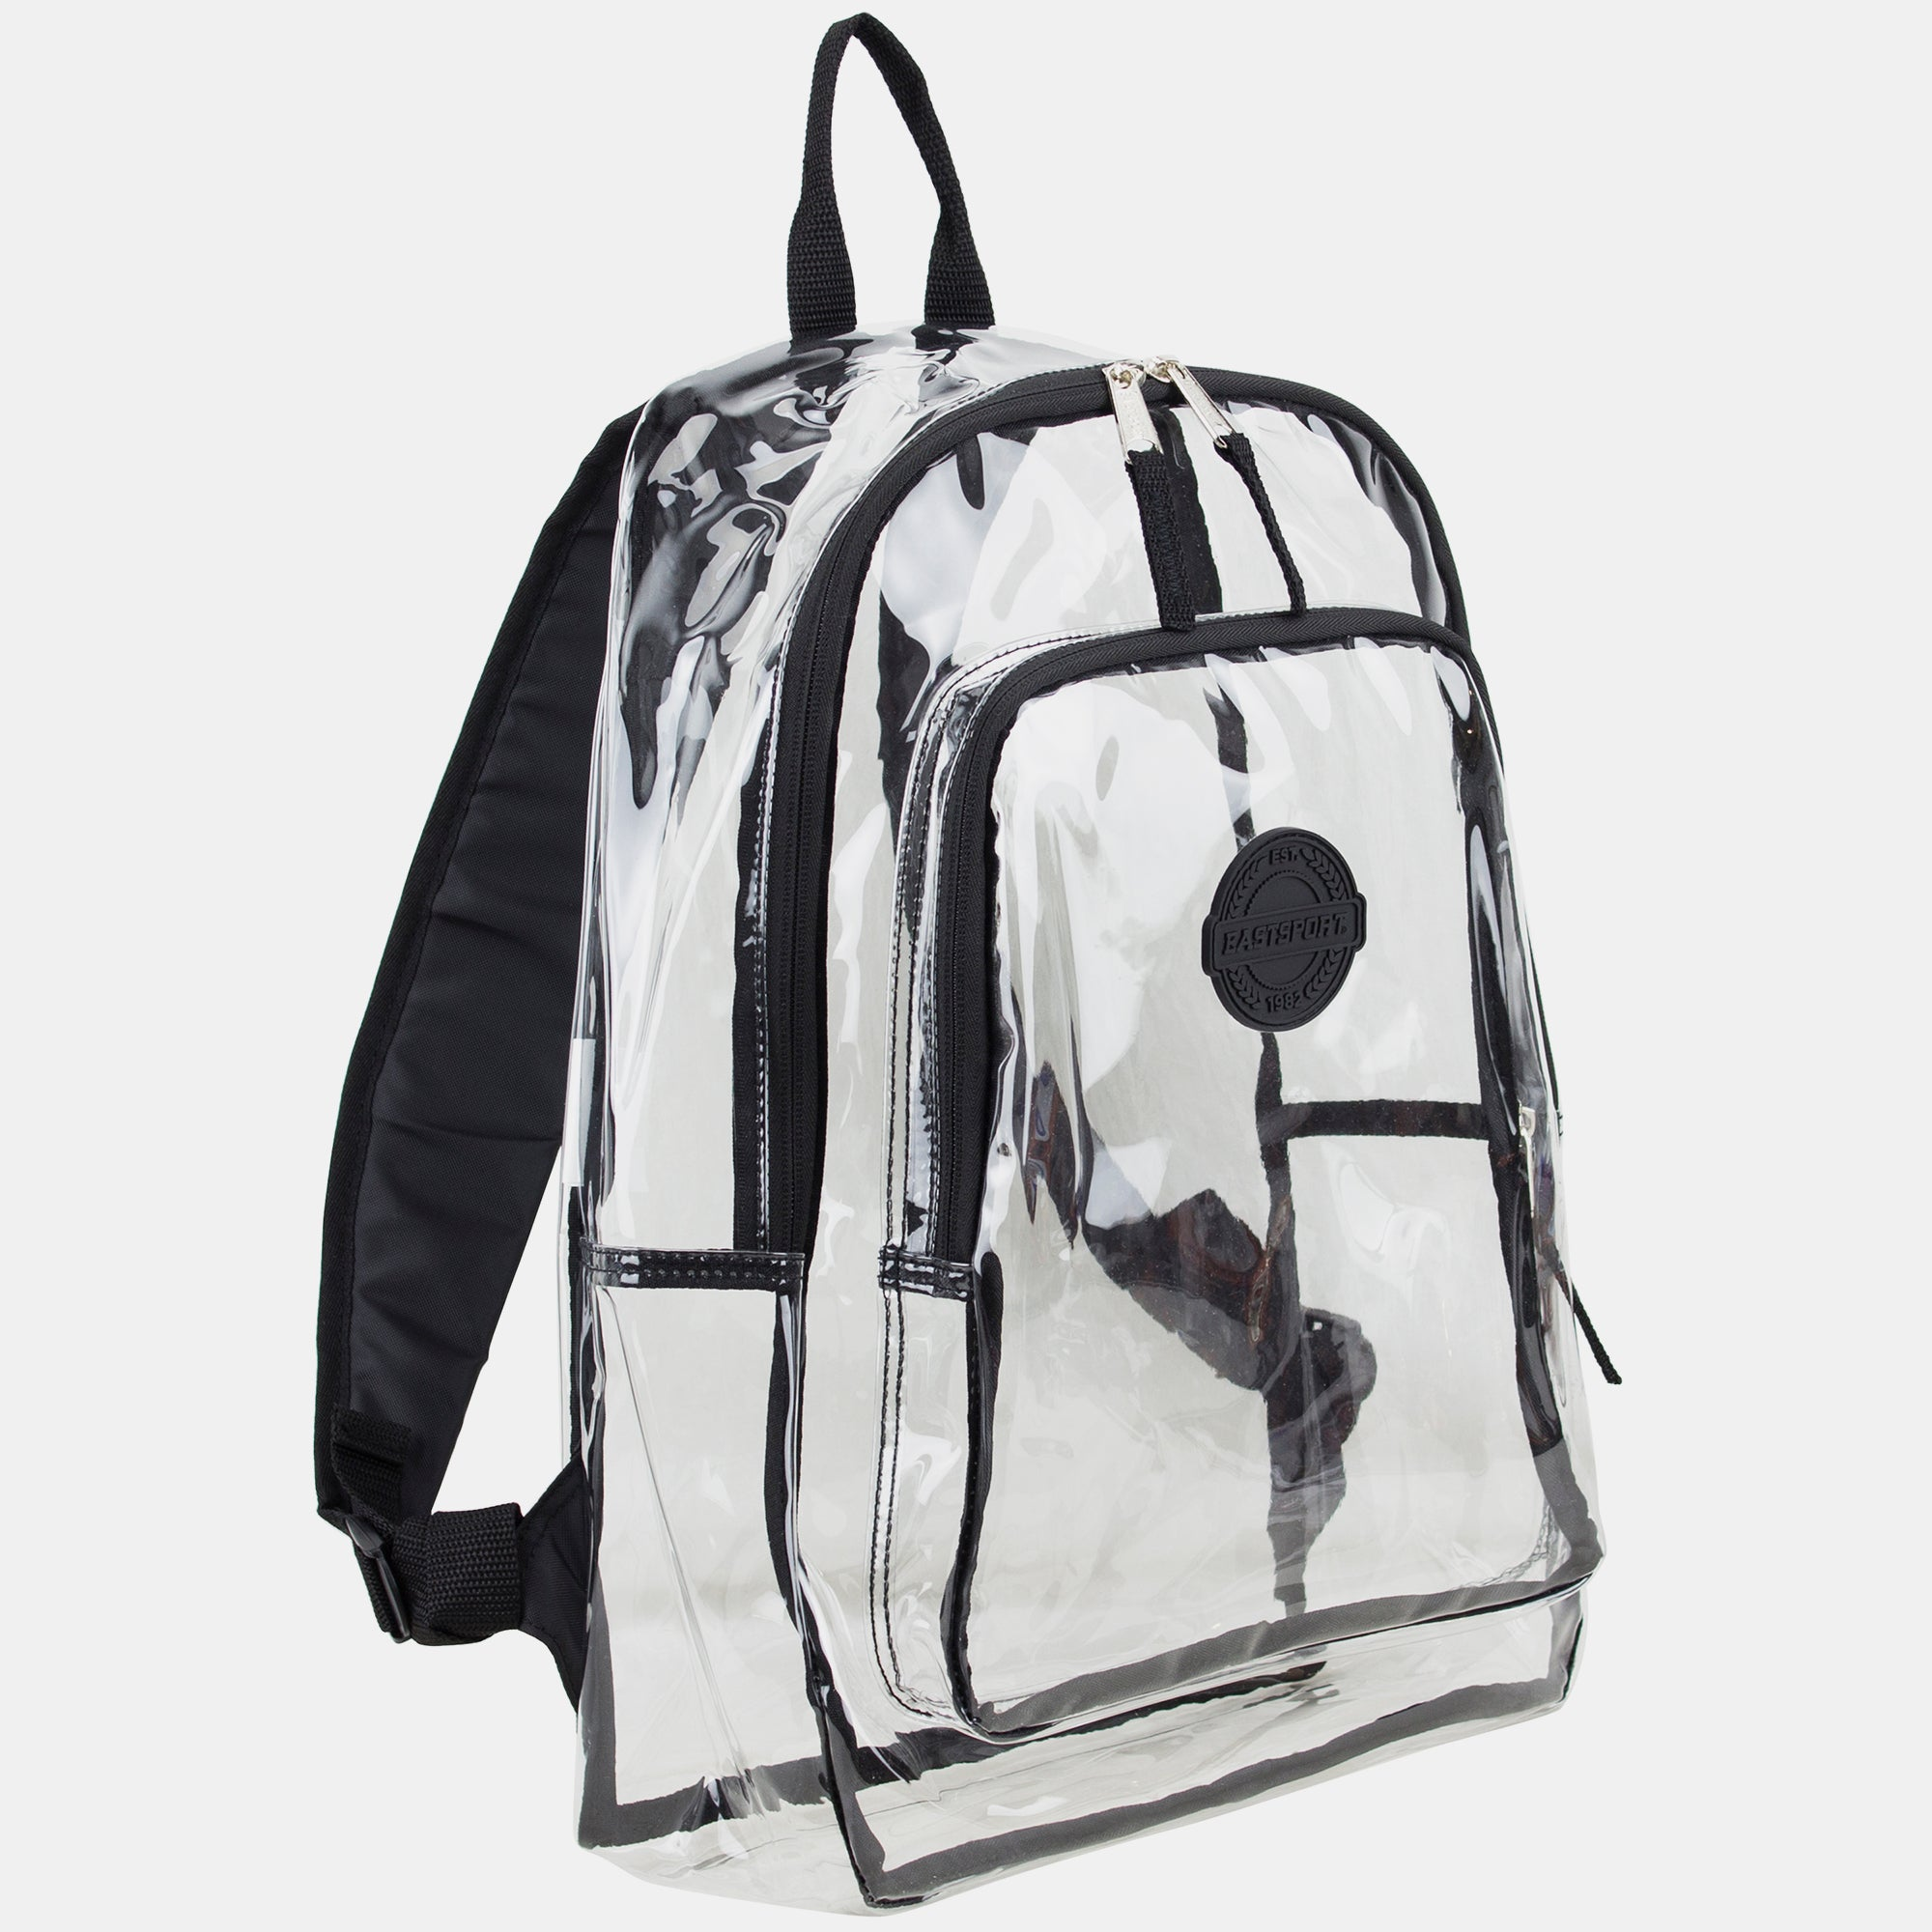 Eastsport Transparent Backpack with Front Pocket